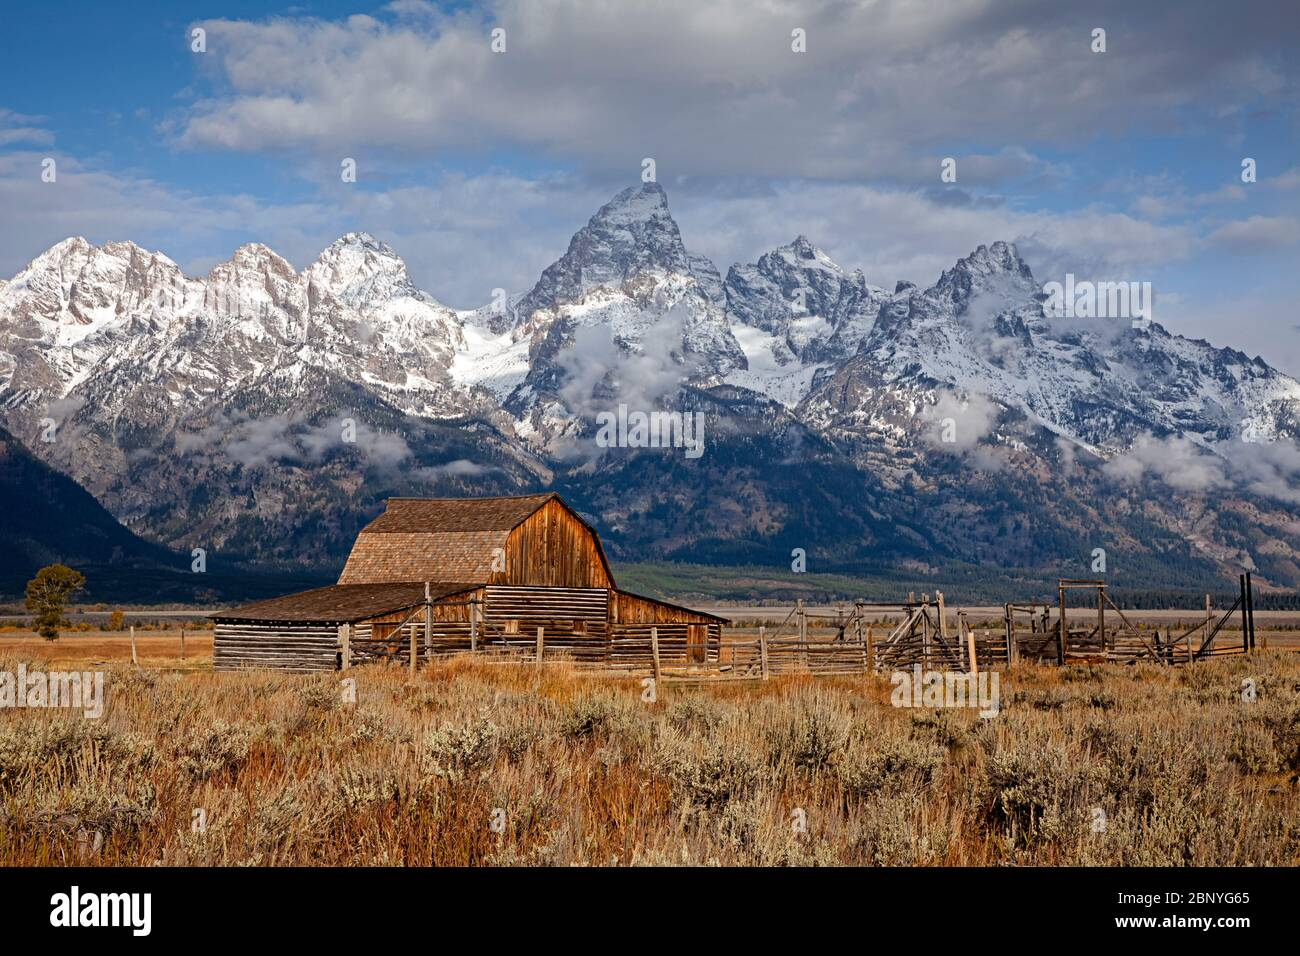 WY04365-00....WYOMING - HIstoric John Moulton barn on Mormon Row with the Grand Teton froming a dramatic background in Grand Teton National Park. Stock Photo